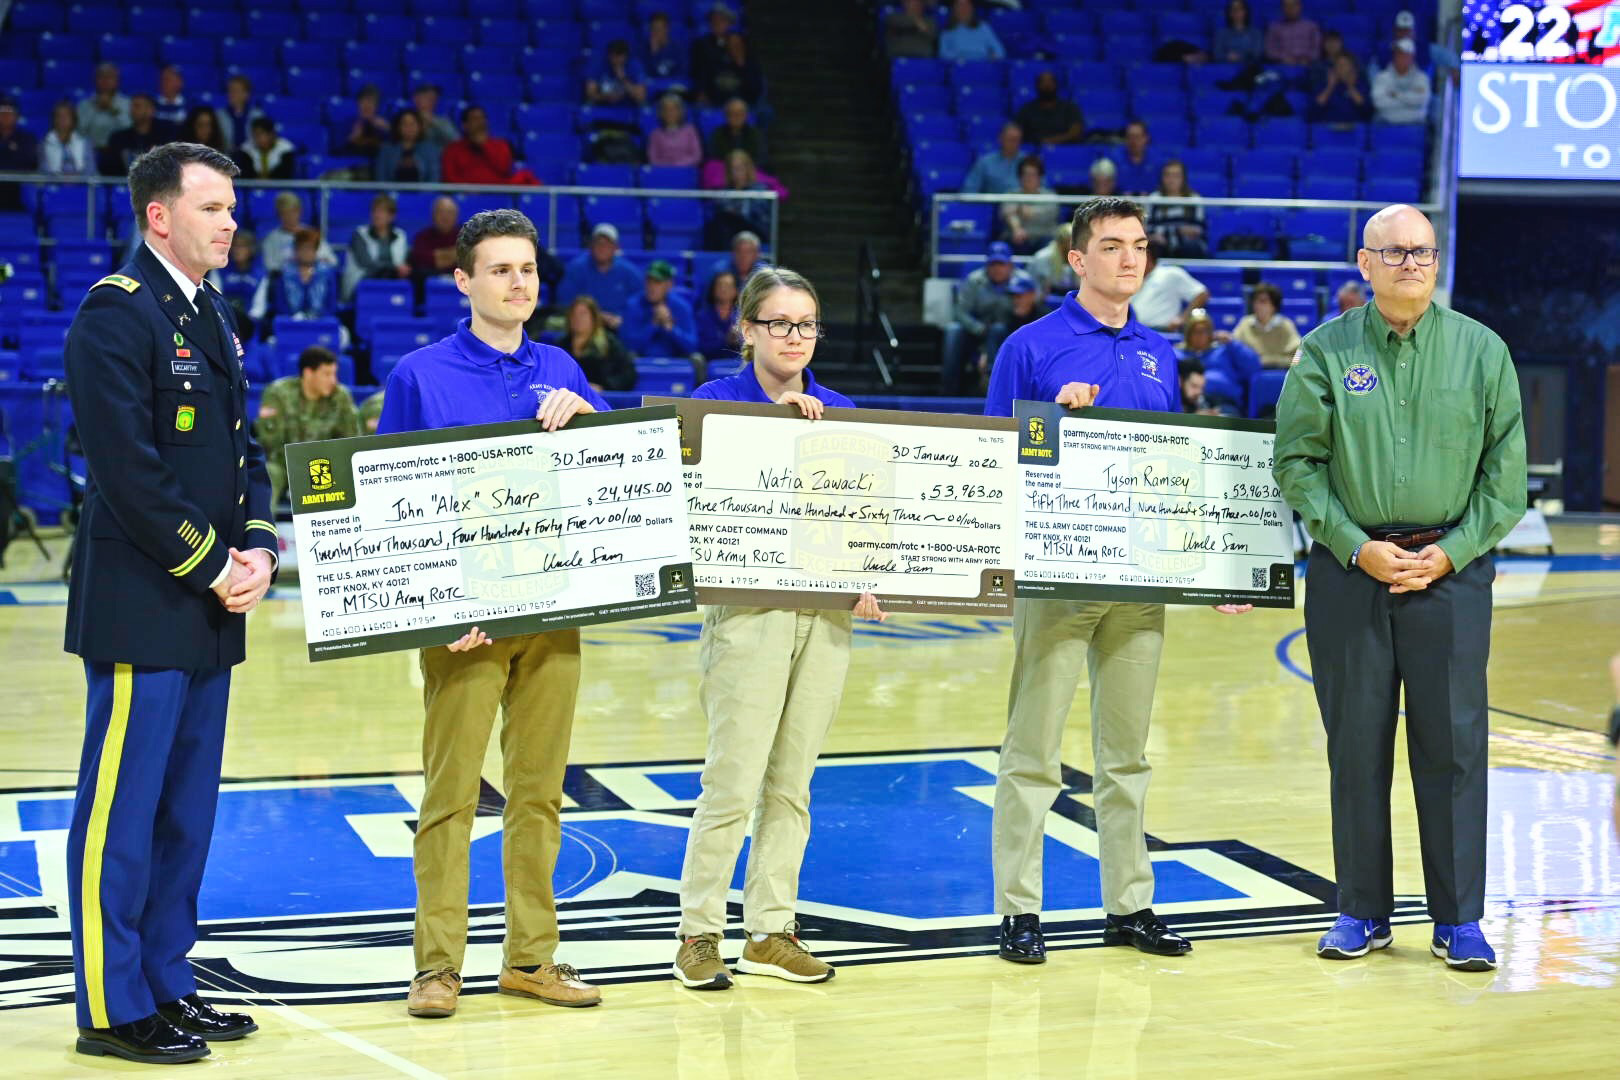 Three Middle Tennessee State University ROTC cadets were awarded Army Reserve scholarships during veteran appreciation events at a recent Women's Basketball game at Murphy Center.